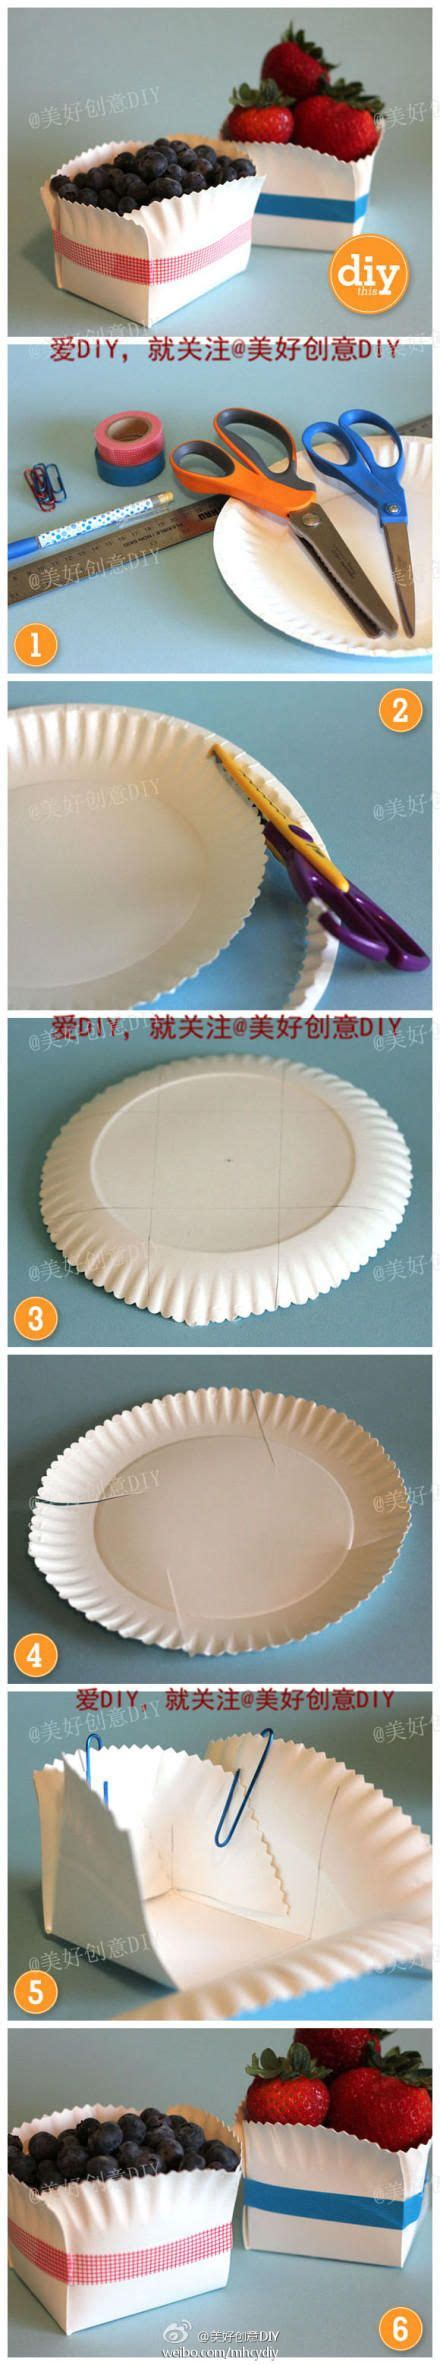 How To Make A Bowl Out Of Paper Mache - make a bowl out of paper plates crafty